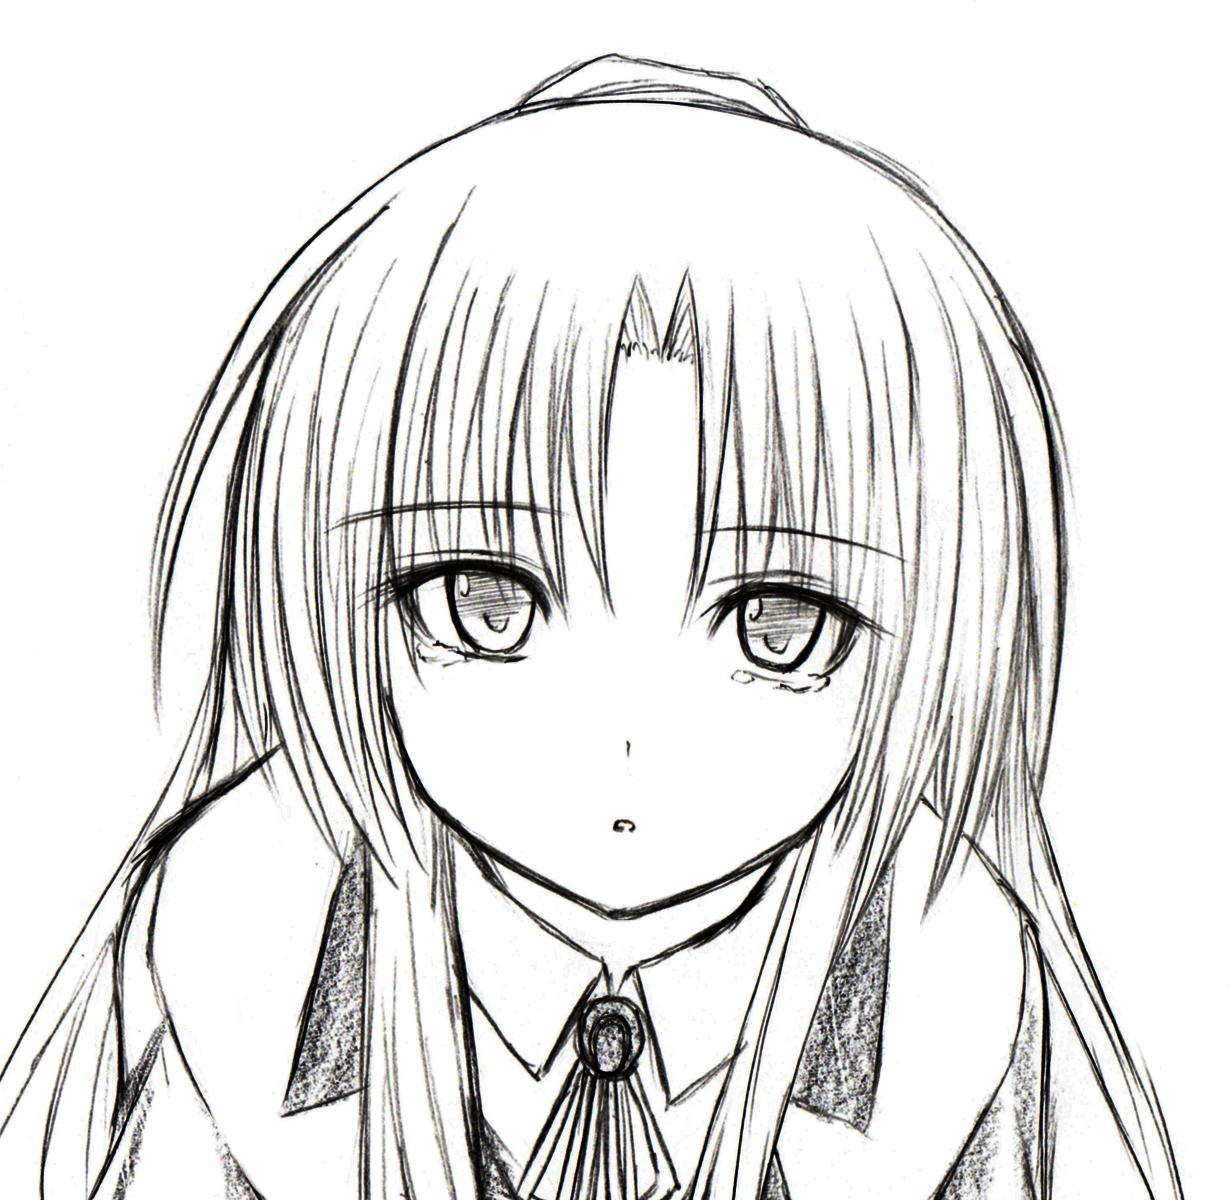 Angel-Beats-Tenshi-sketch-by-Tsundere-chan-deviantart-com-on-deviantART-wallpaper-wp5004524